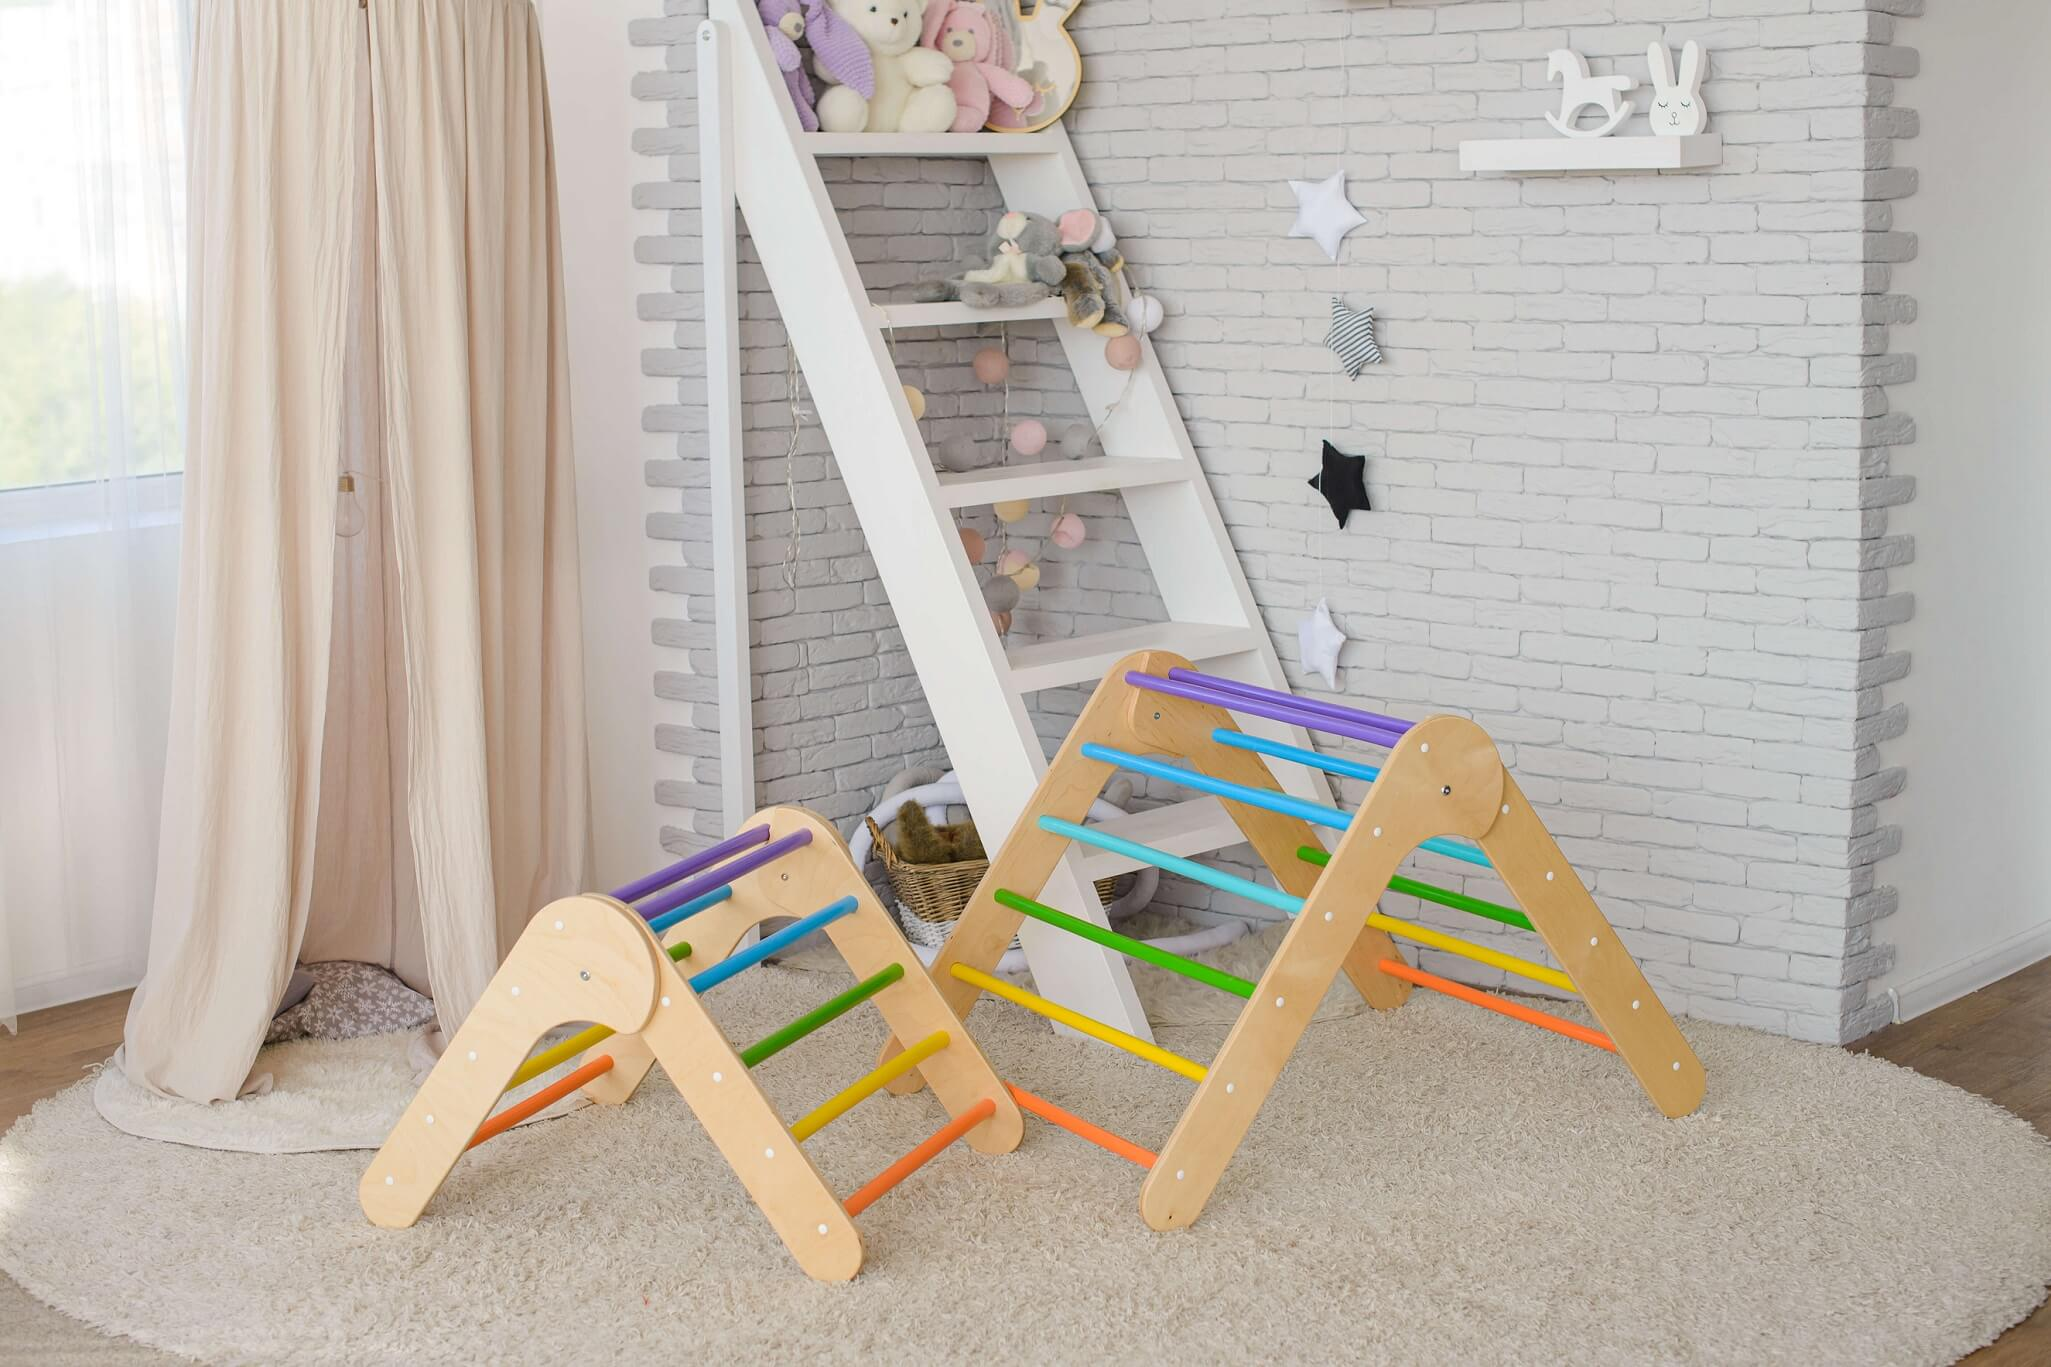 pikler triangles